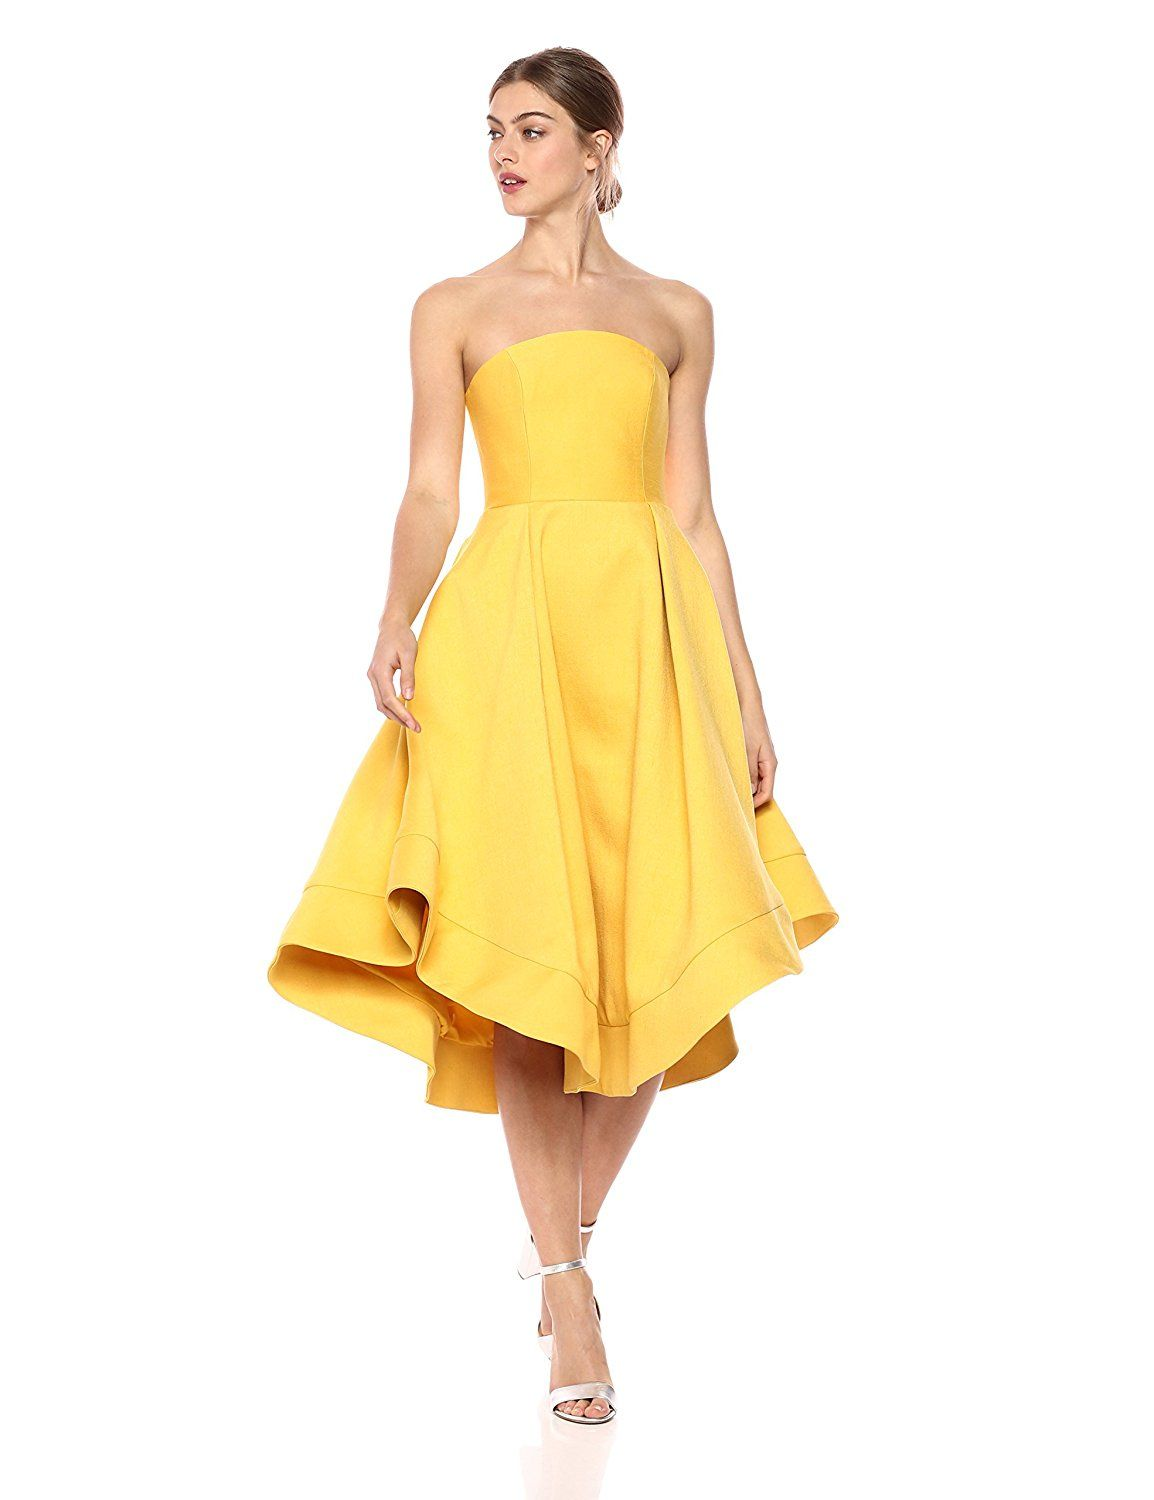 10 Best Wedding Guest Dresses For Spring 2018 Stylish Dresses To - Best Dresses For Wedding Guests